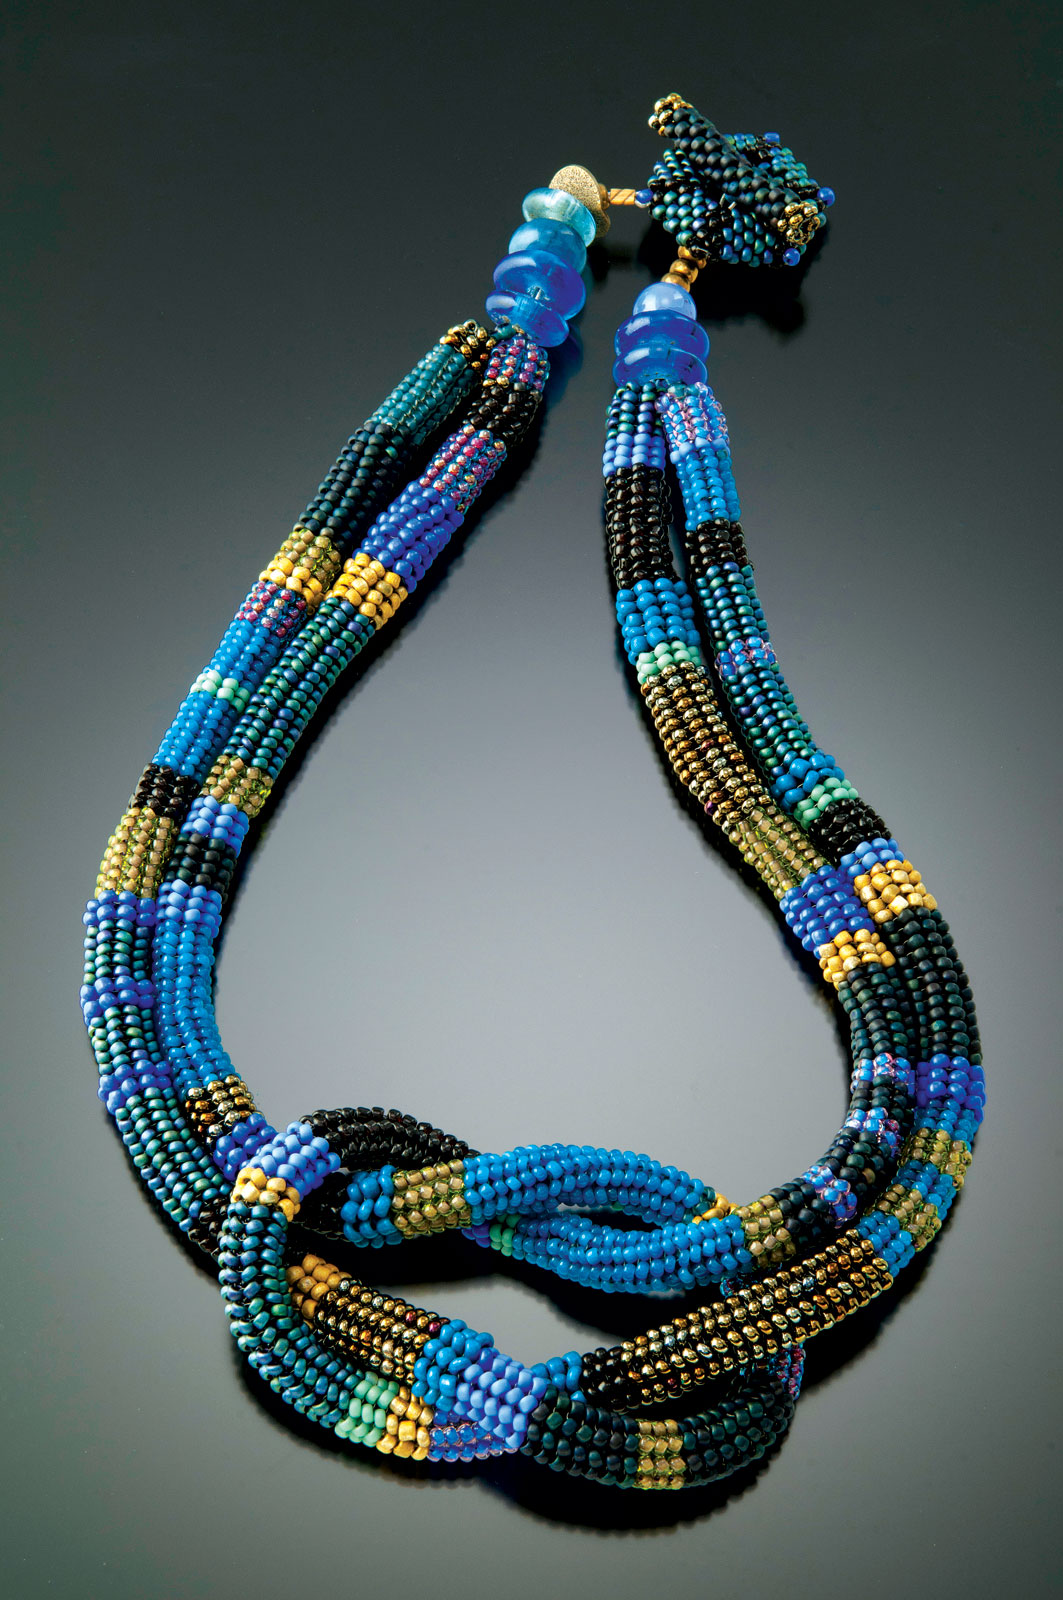 WISTERIA AND LEAF SQUARE KNOT NECKLACE of glass beads, woven in a spiral herringbone stitch with a needle and fishing line. The hollow tube is filled with small glass beads and then knotted into a square knot form; with recycled glass, stone beads and handwoven toggle closure, 45 centimeters long x 5 centimeters high, 2014.